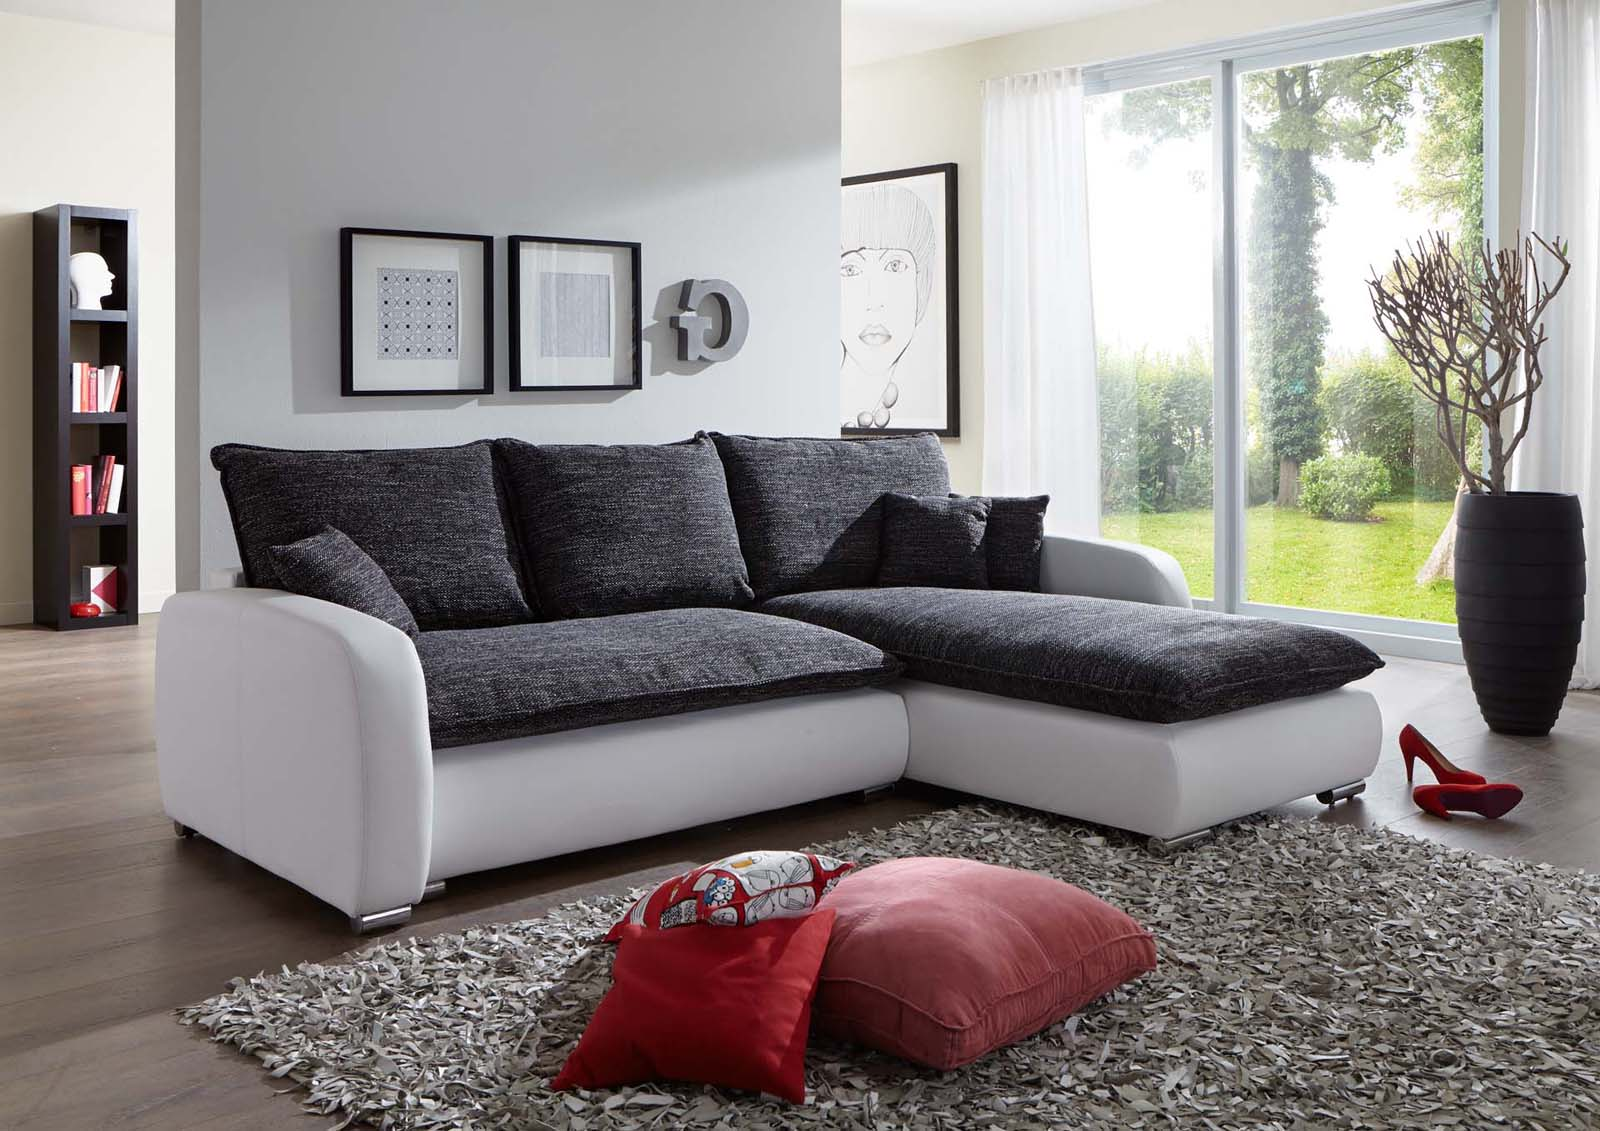 Sam ecksofa grau wei scala 24 sofa 260 x 180 cm for Ecksofa trends